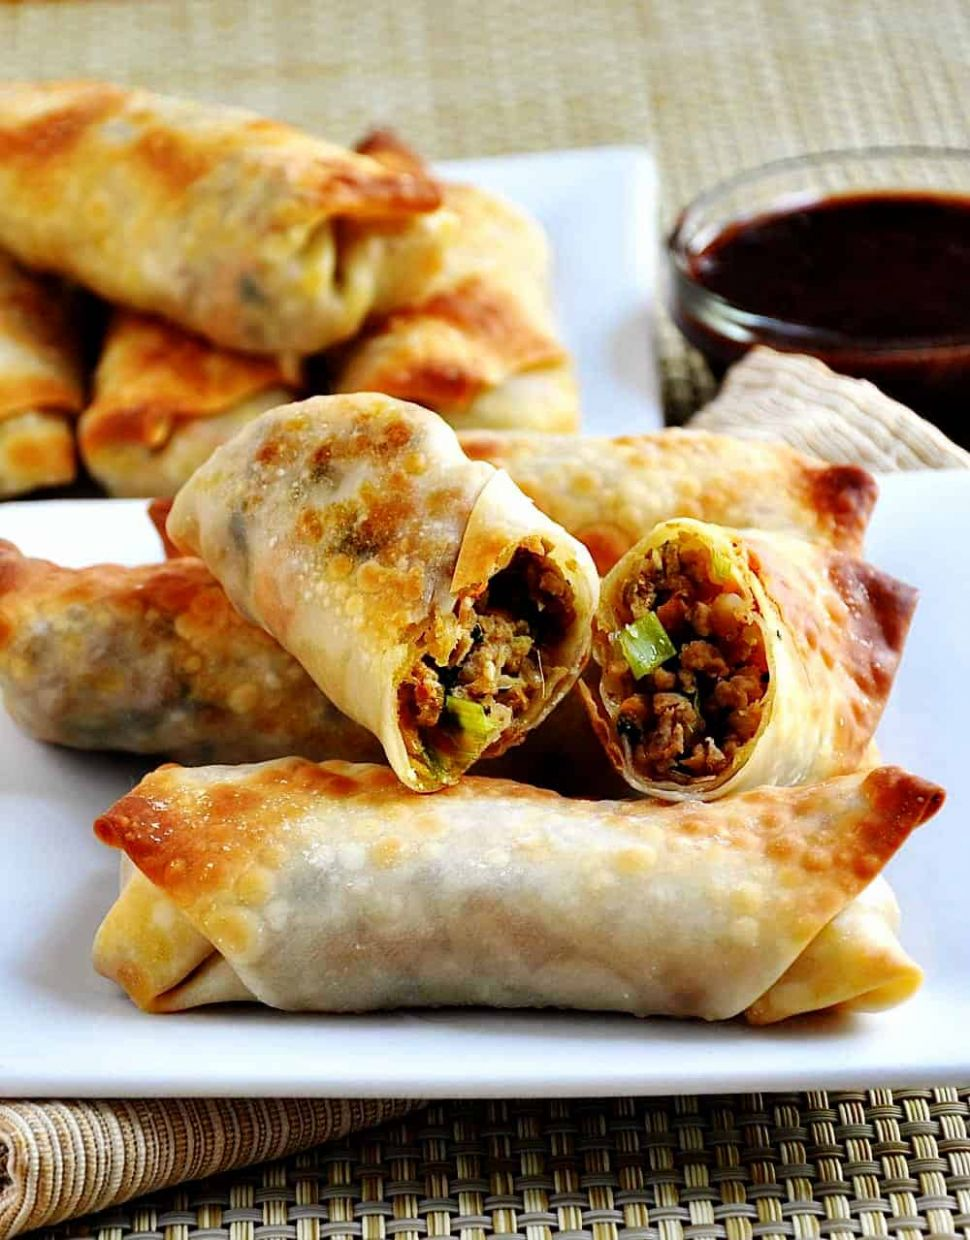 Pork and Vegetable Crispy Baked Egg Rolls - Pinch and Swirl - Recipes Using Egg Roll Wrappers Baked